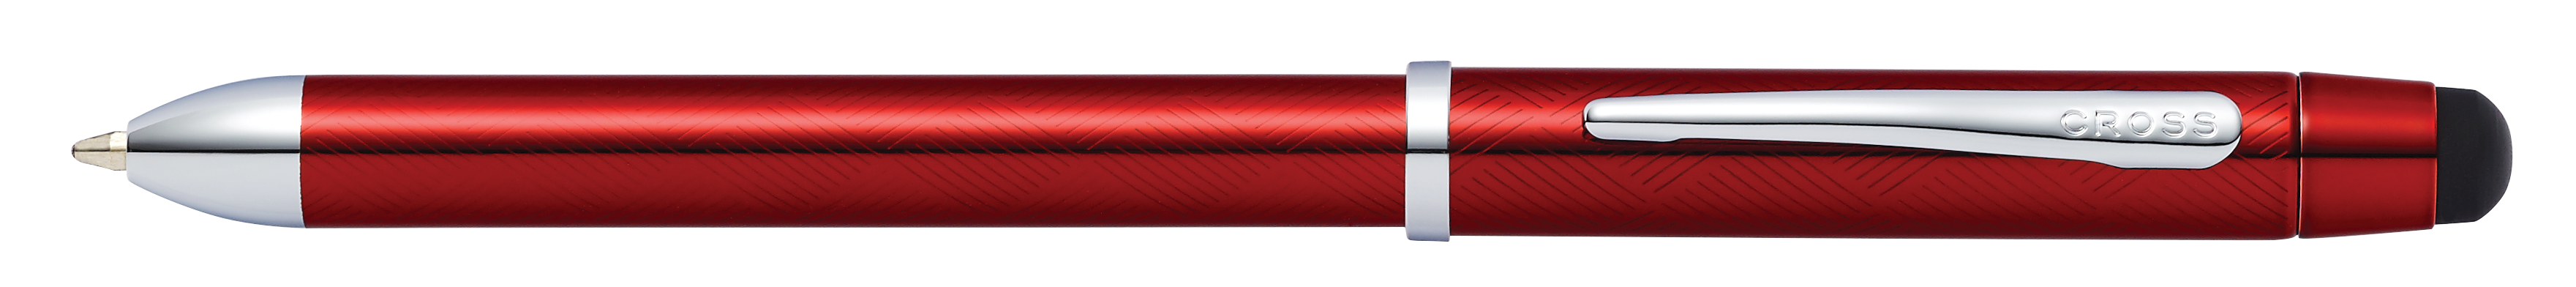 Tech3+ Translucent Red Lacquer Multifunction Pen - Self-Server Packaging